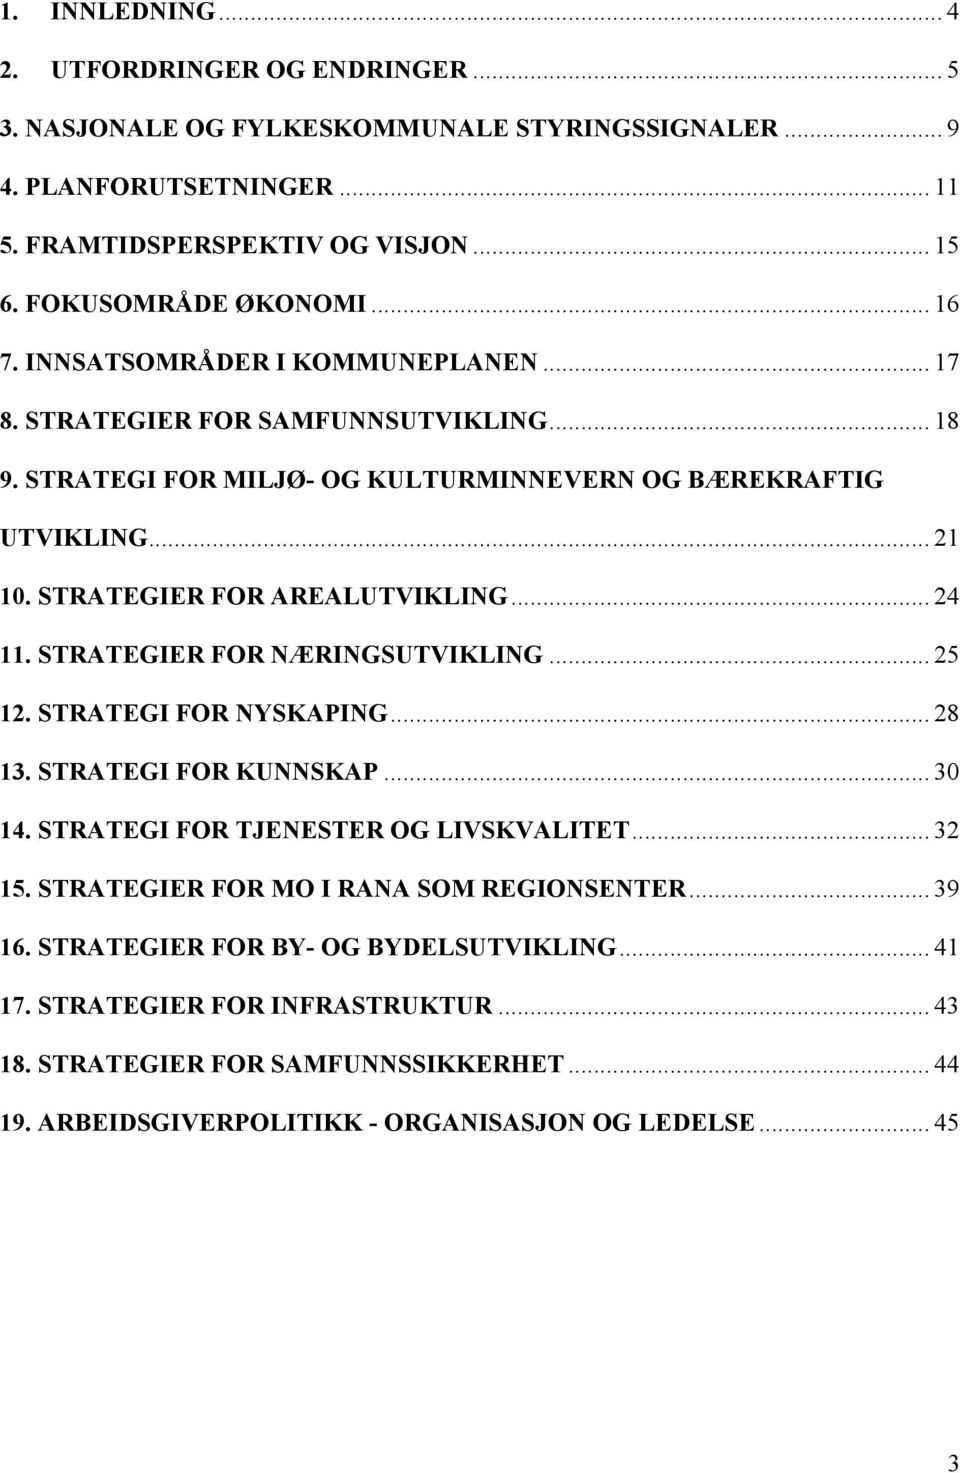 .. 24 11. STRATEGIER FOR NÆRINGSUTVIKLING... 25 12. STRATEGI FOR NYSKAPING... 28 13. STRATEGI FOR KUNNSKAP... 30 14. STRATEGI FOR TJENESTER OG LIVSKVALITET... 32 15.